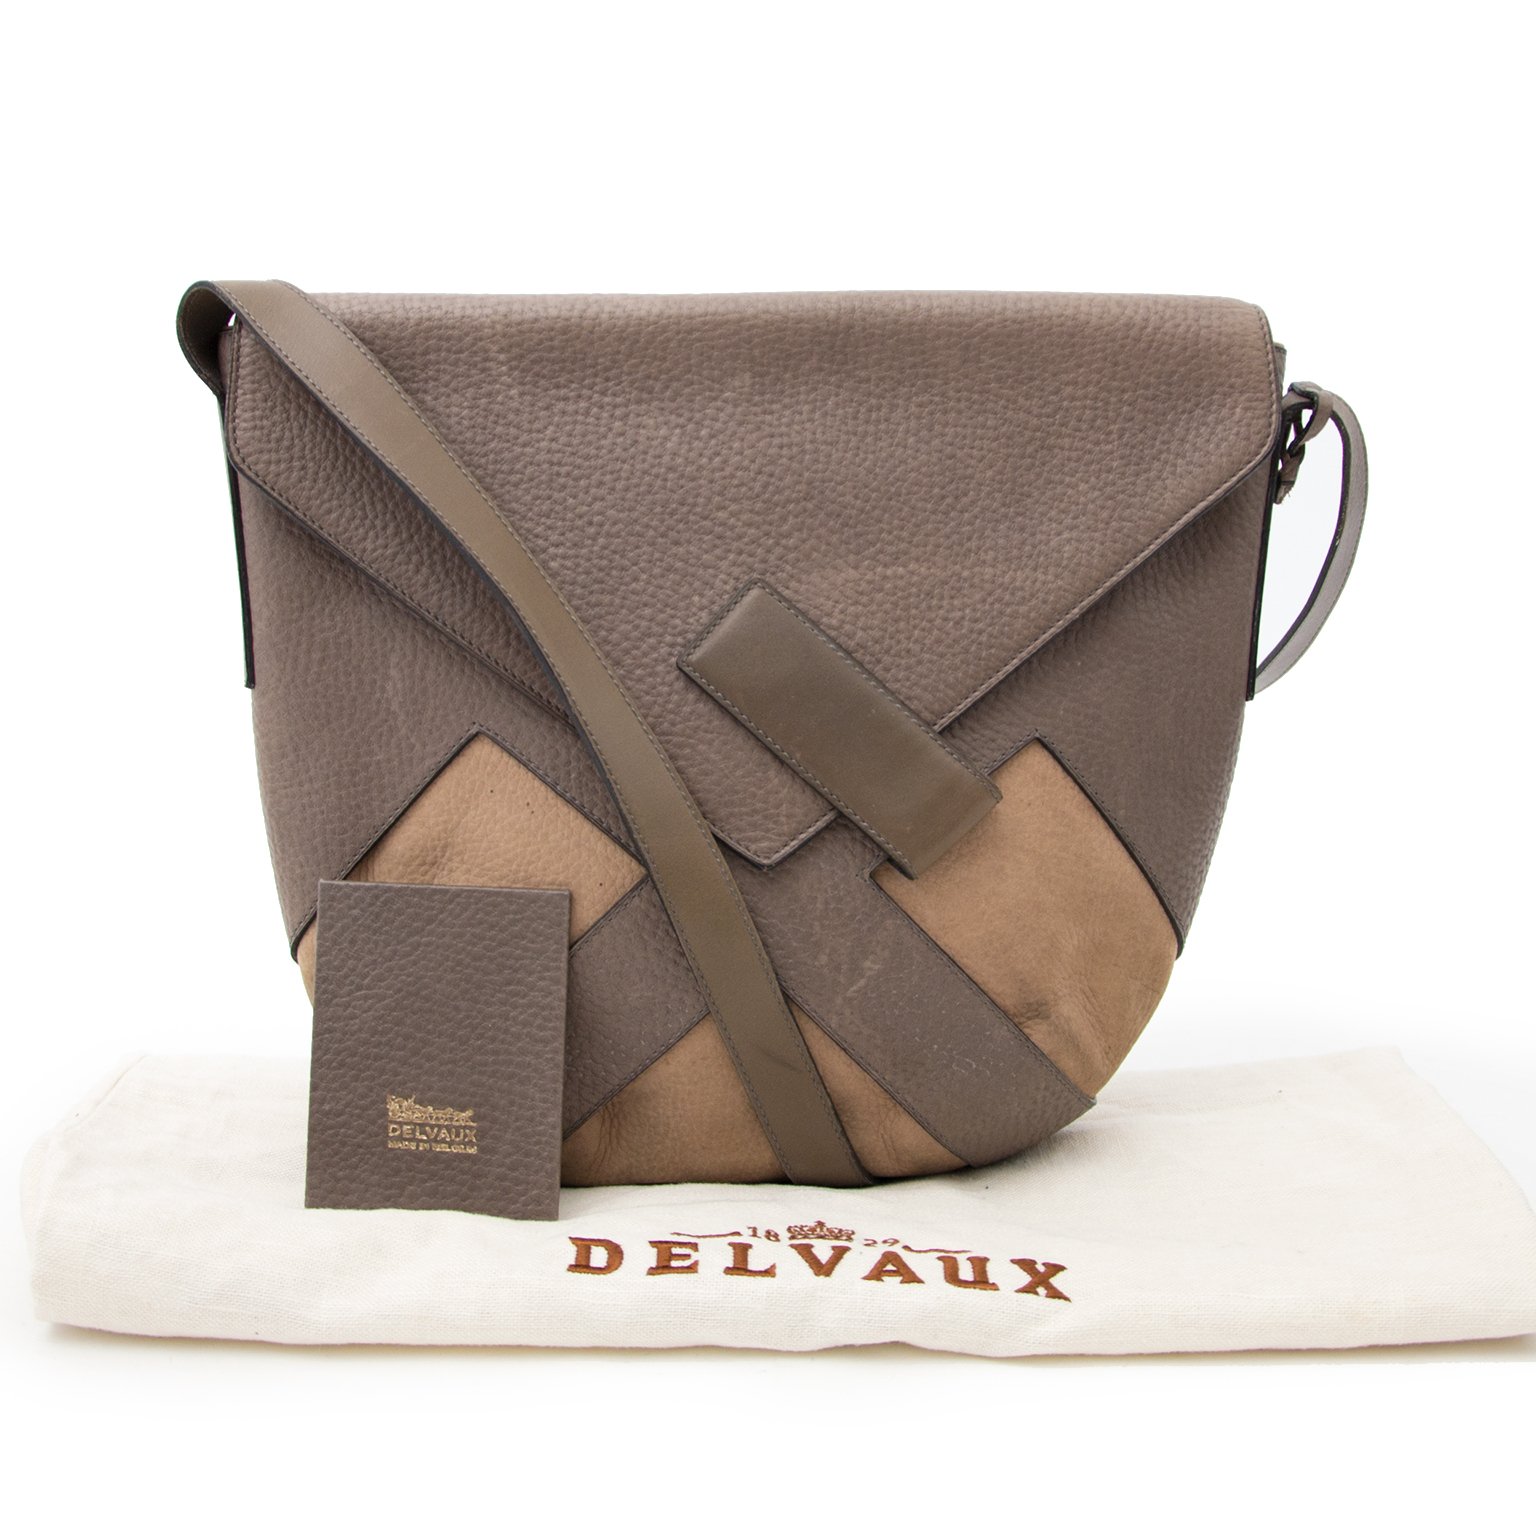 Looking for a Delvaux Taupe 'Delice' Bag?